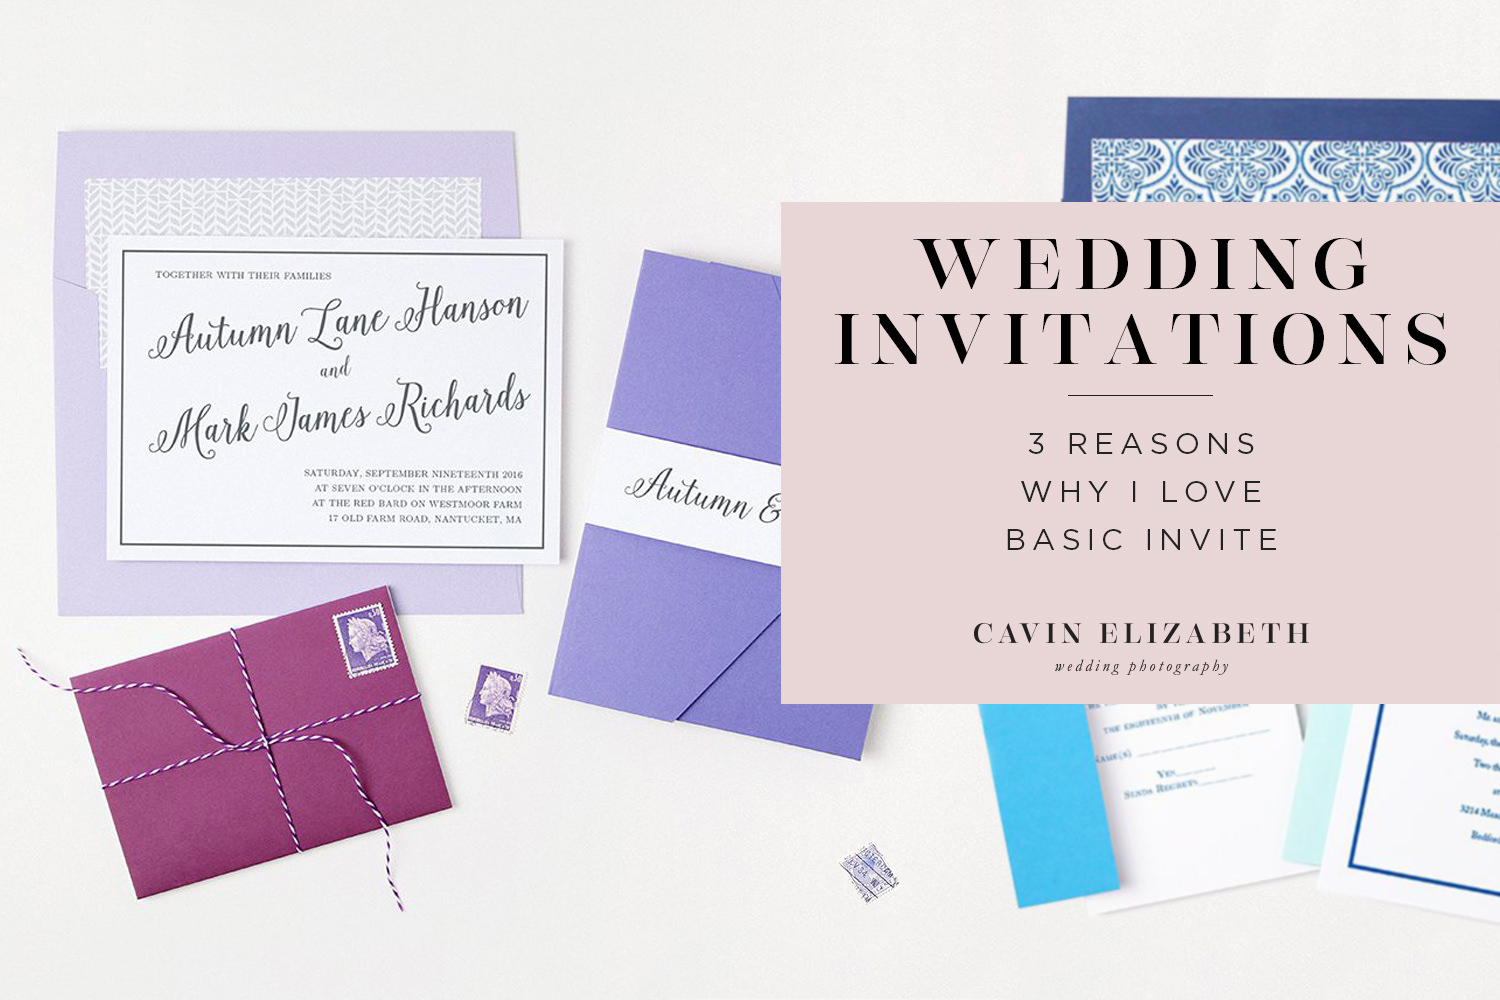 Basic Invite Wedding Invitations: 3 Reasons Why I Love Basic Invite And Their Gorgeous